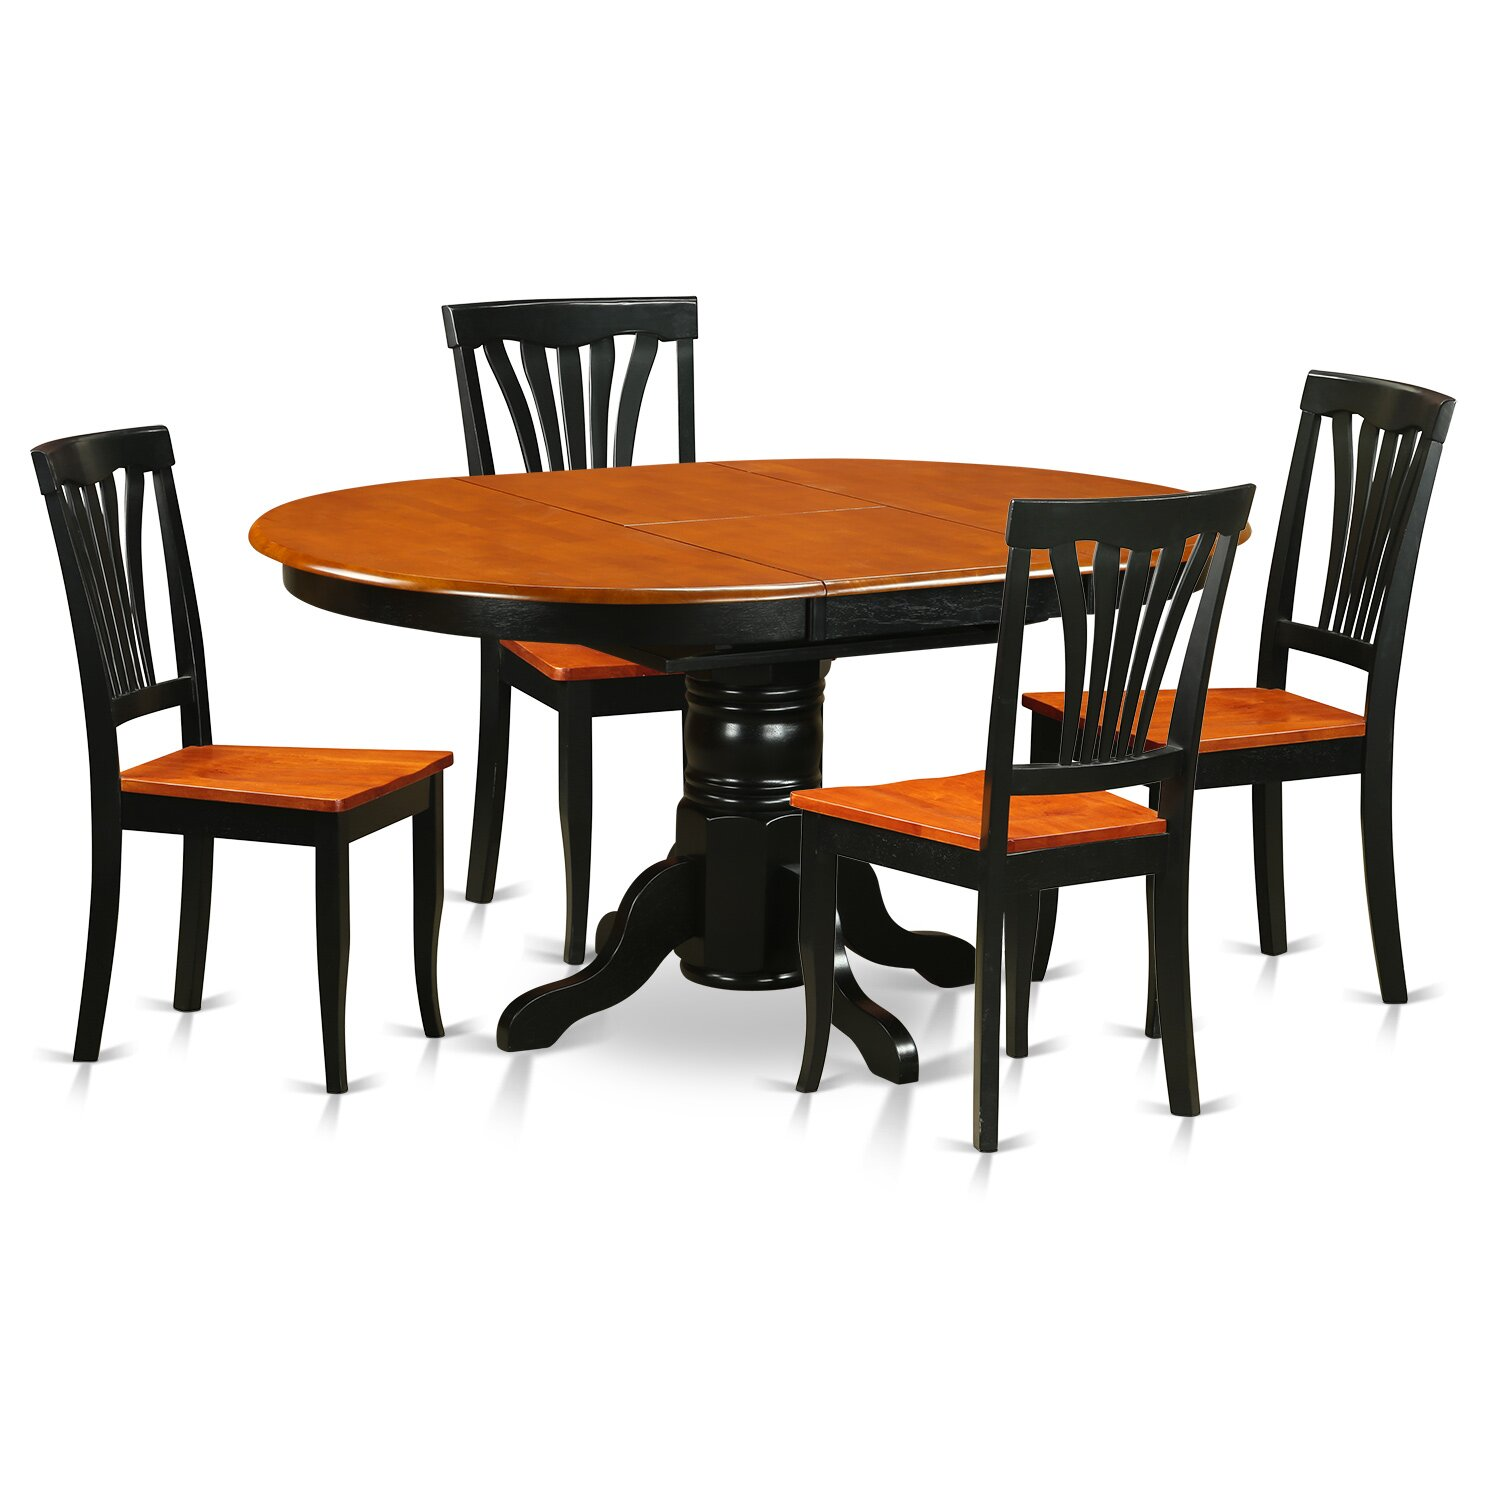 Wooden importers avon 5 piece dining set reviews wayfair for 5 piece dining set